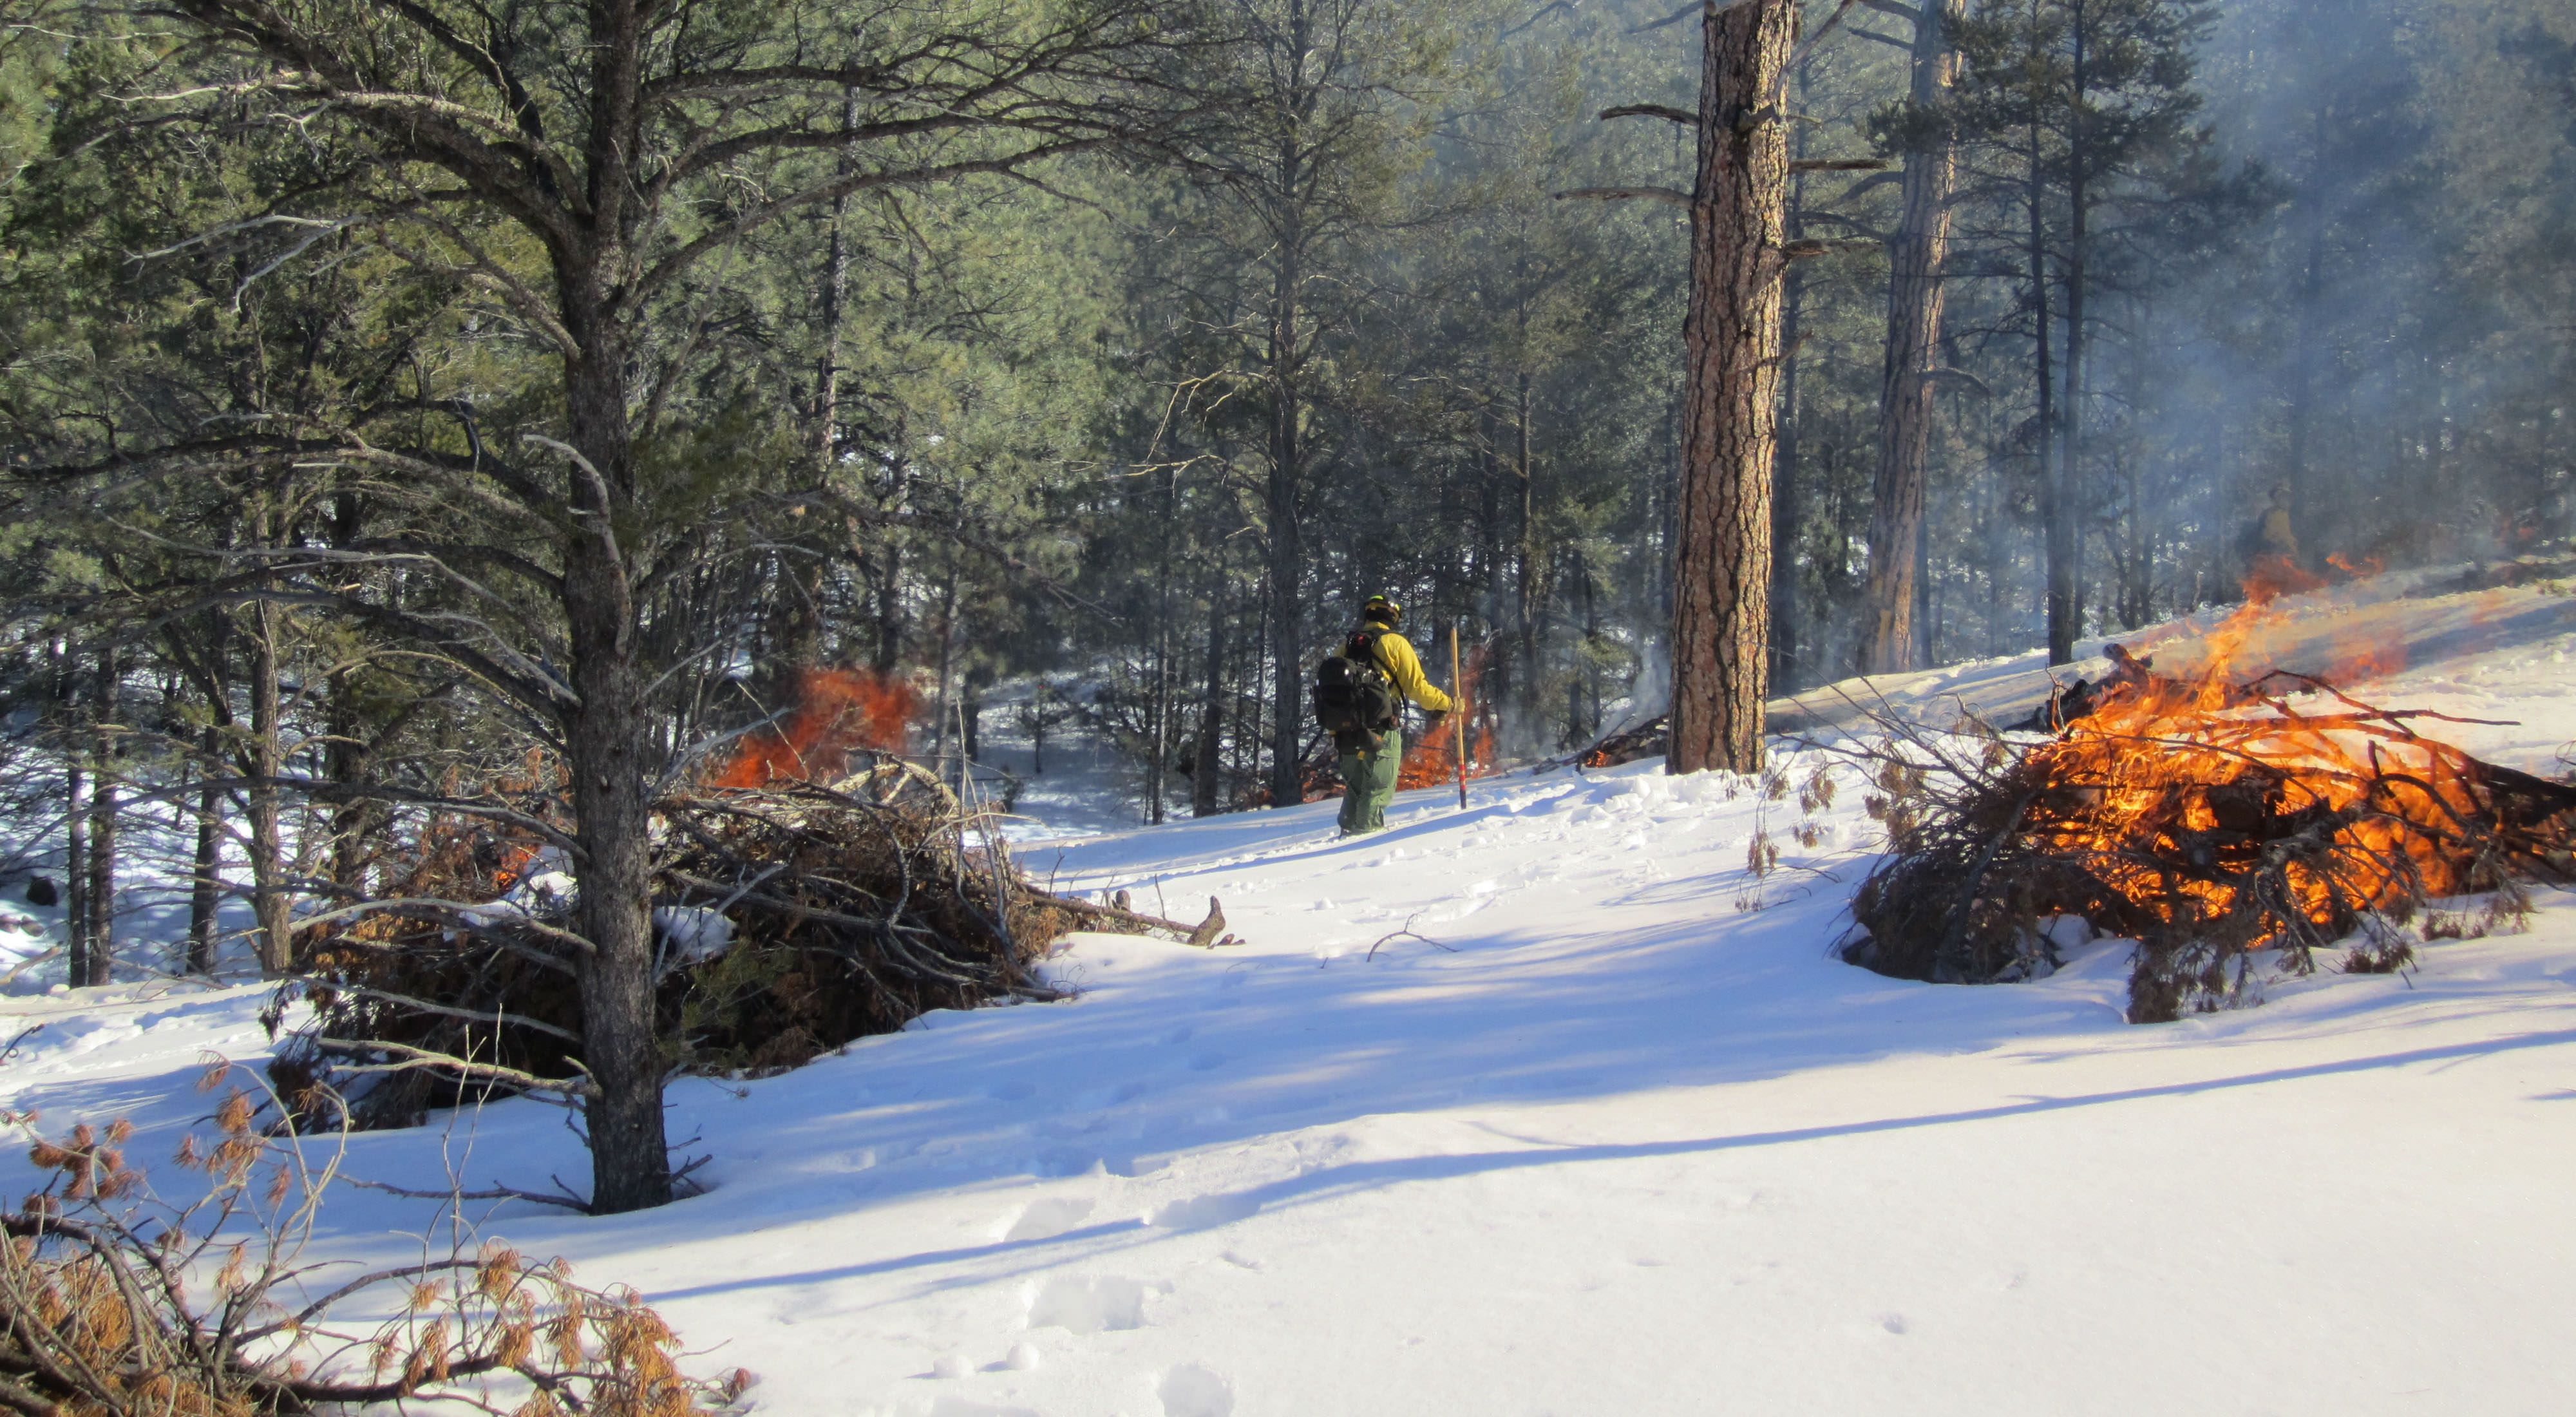 Workers on a prescribed burn on a snowy forested hill.